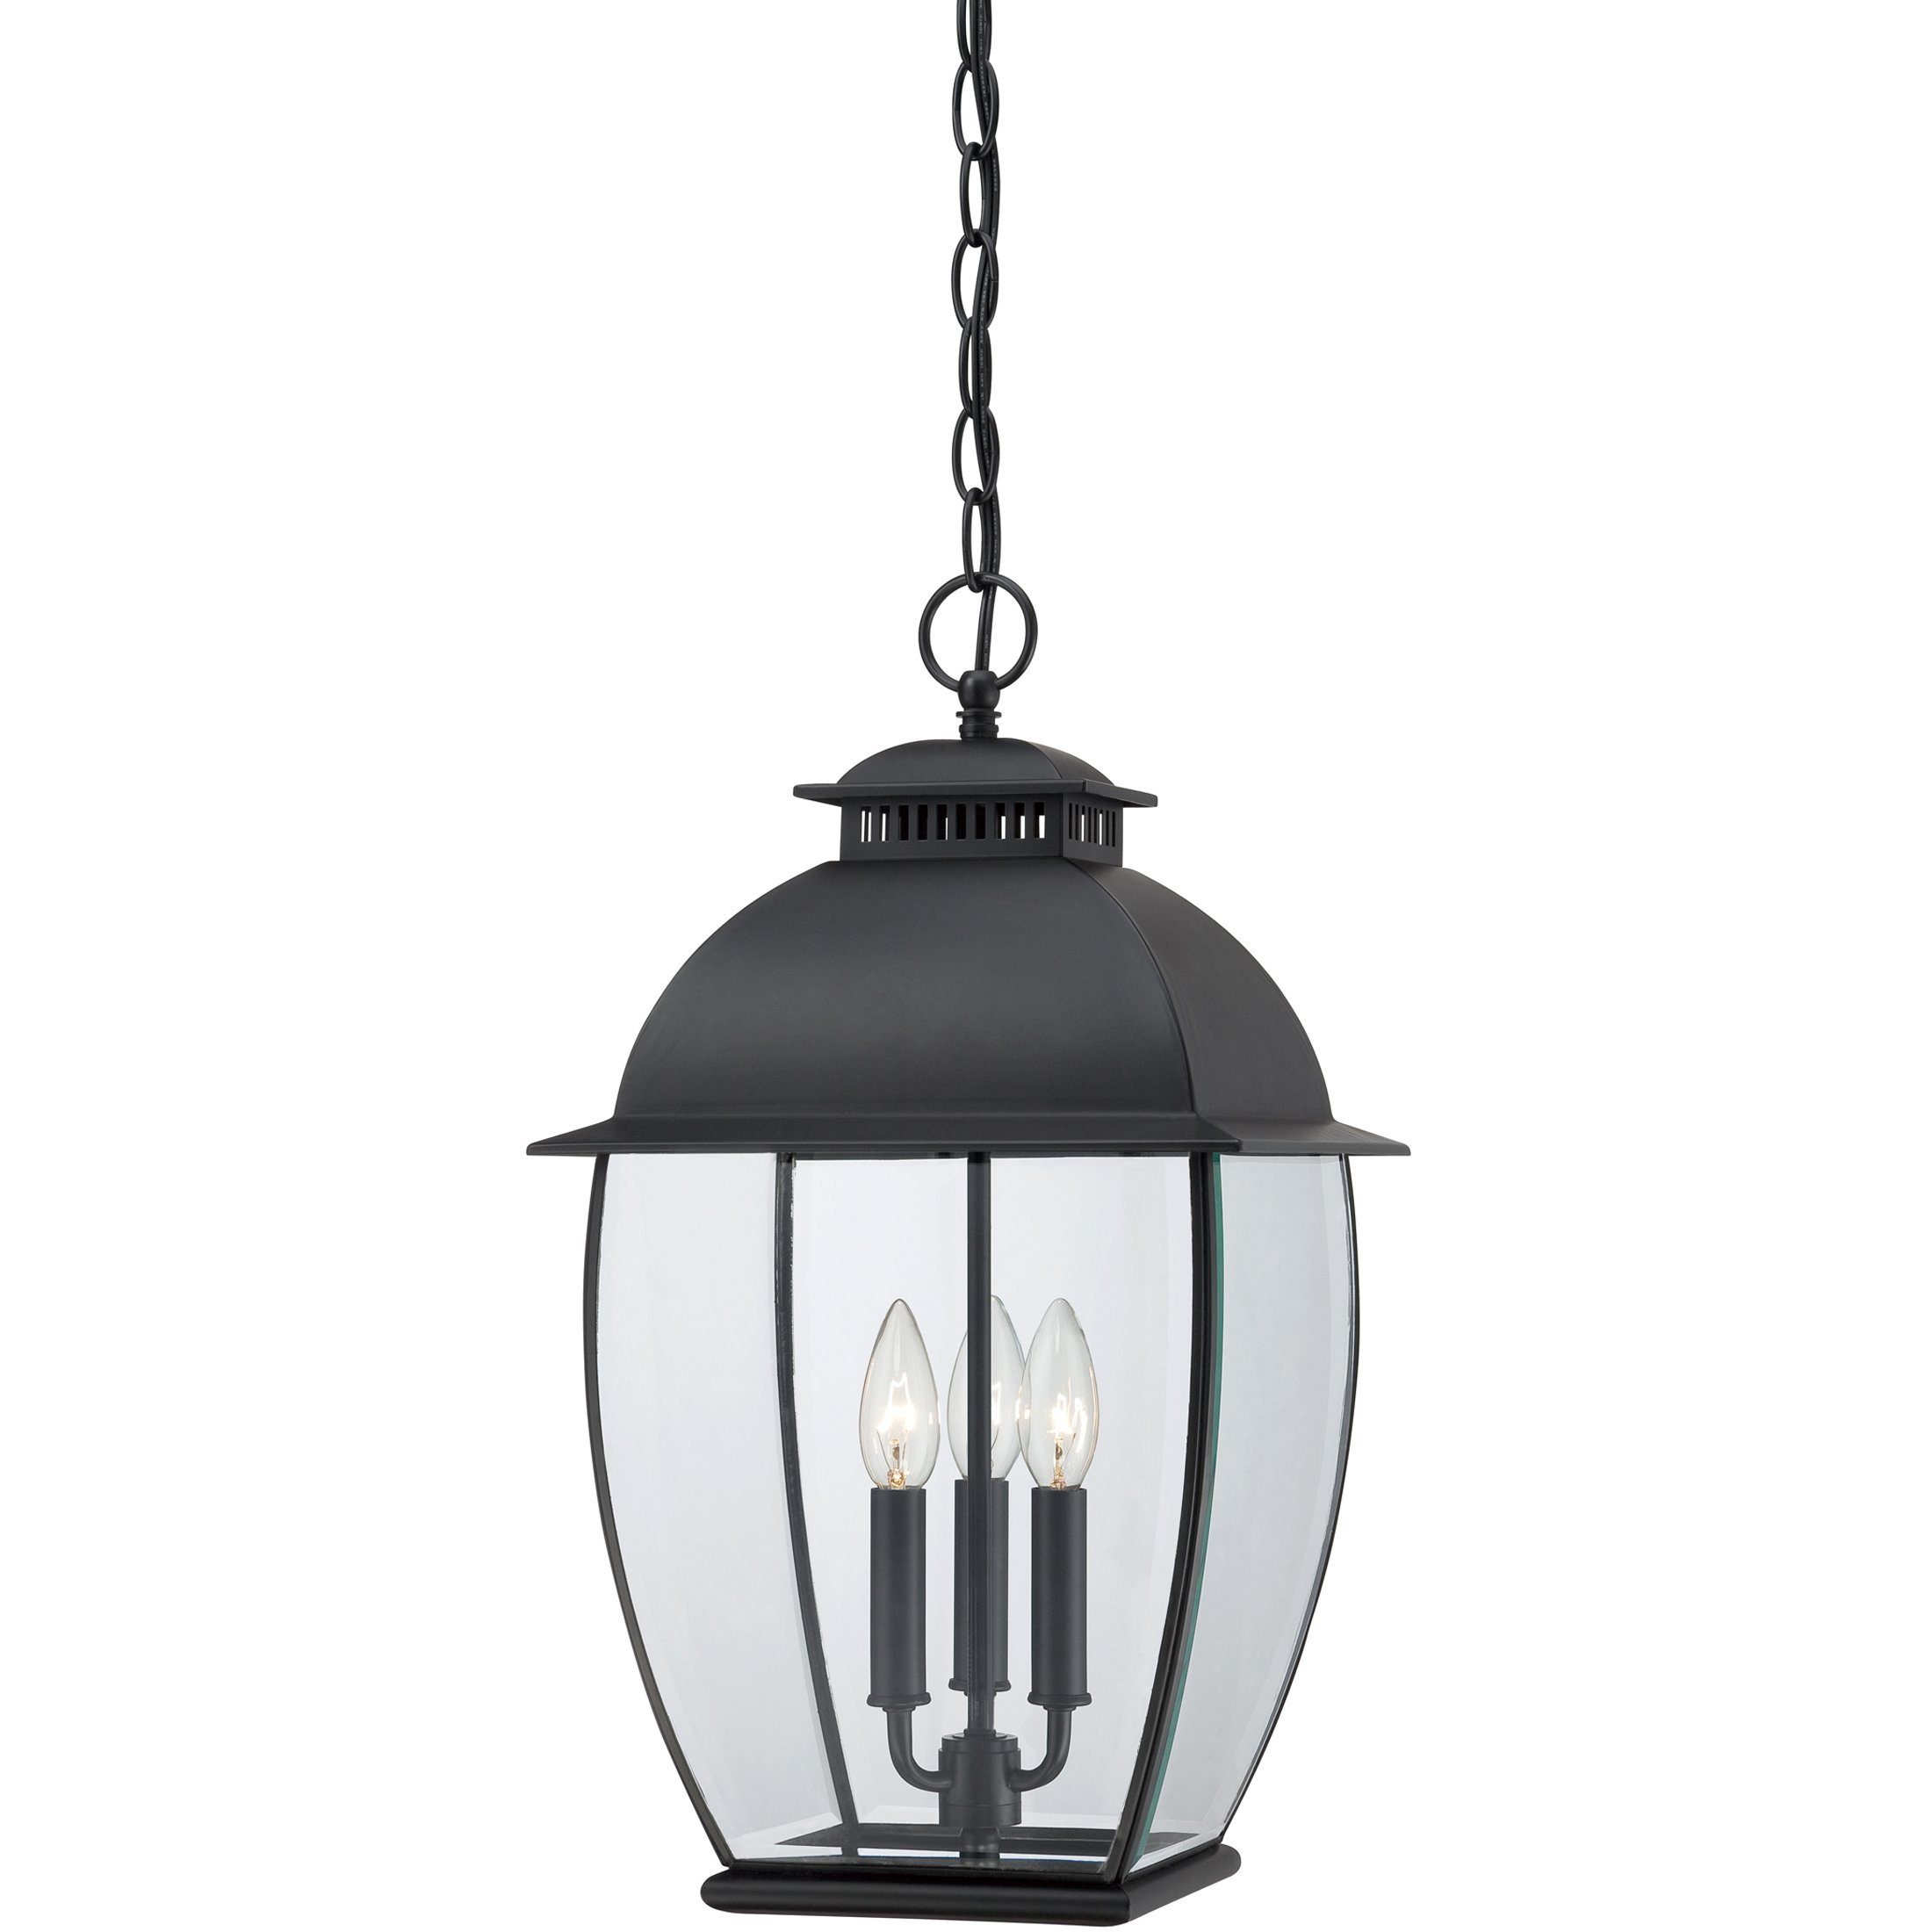 Quoizel BAN1911K Three Light Outdoor Hanging Lantern by Quoizel